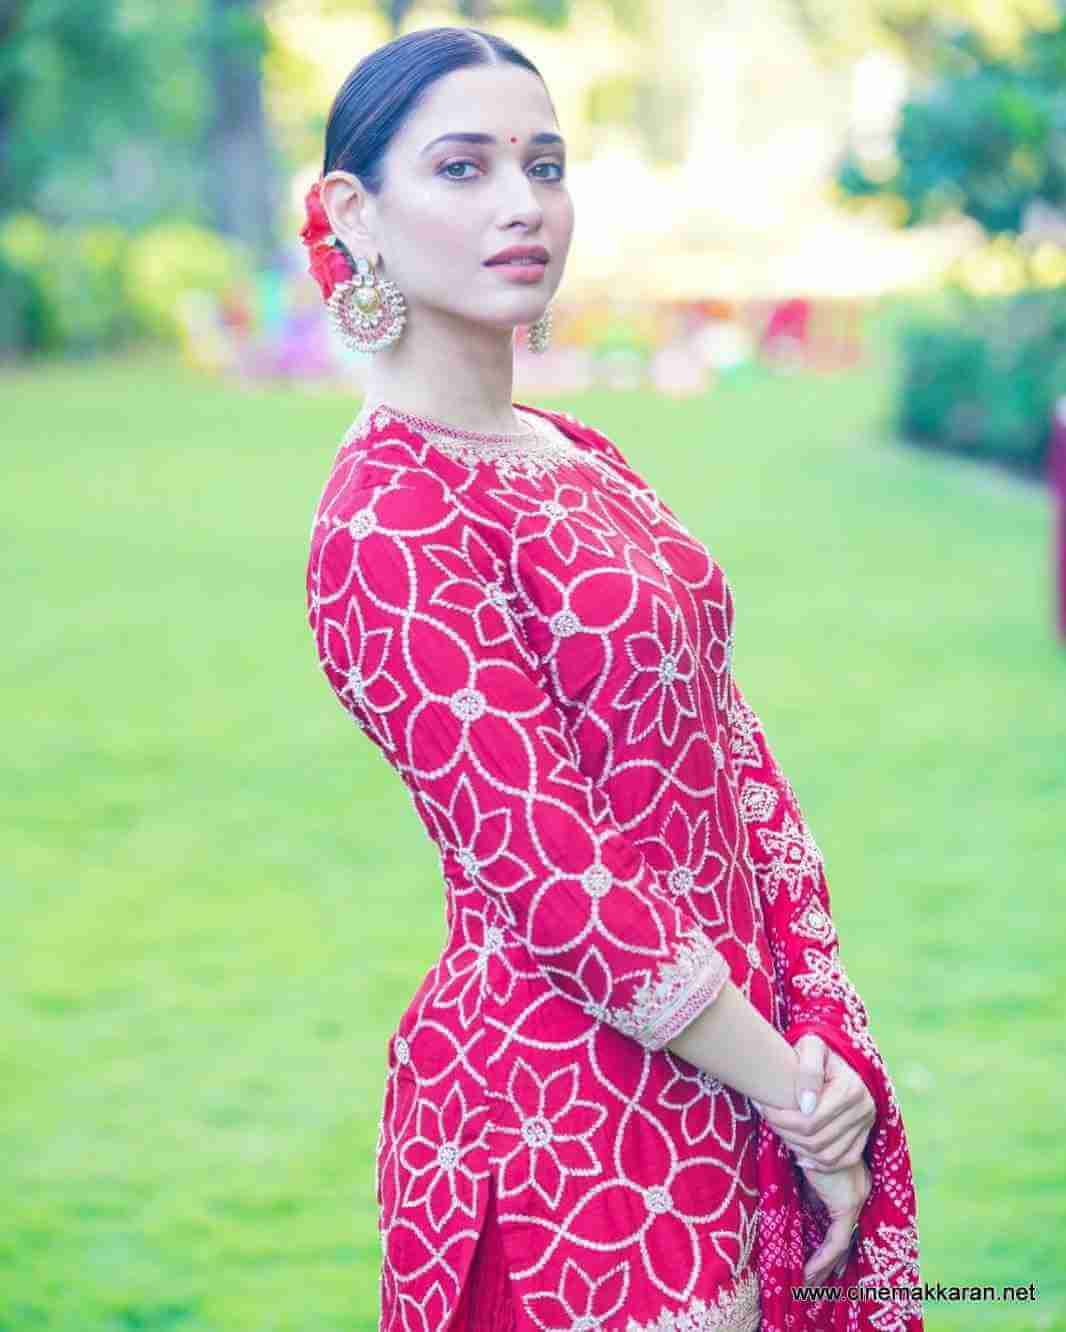 Tamannaah Bhatia Photos(images), Height, Biography, Movies, Date Of Birth, House, Details, Marriage, Boyfriend, Net Worth, Education, Instagram, Facebook, Twitter, Wiki, Imdb, Youtube (75)